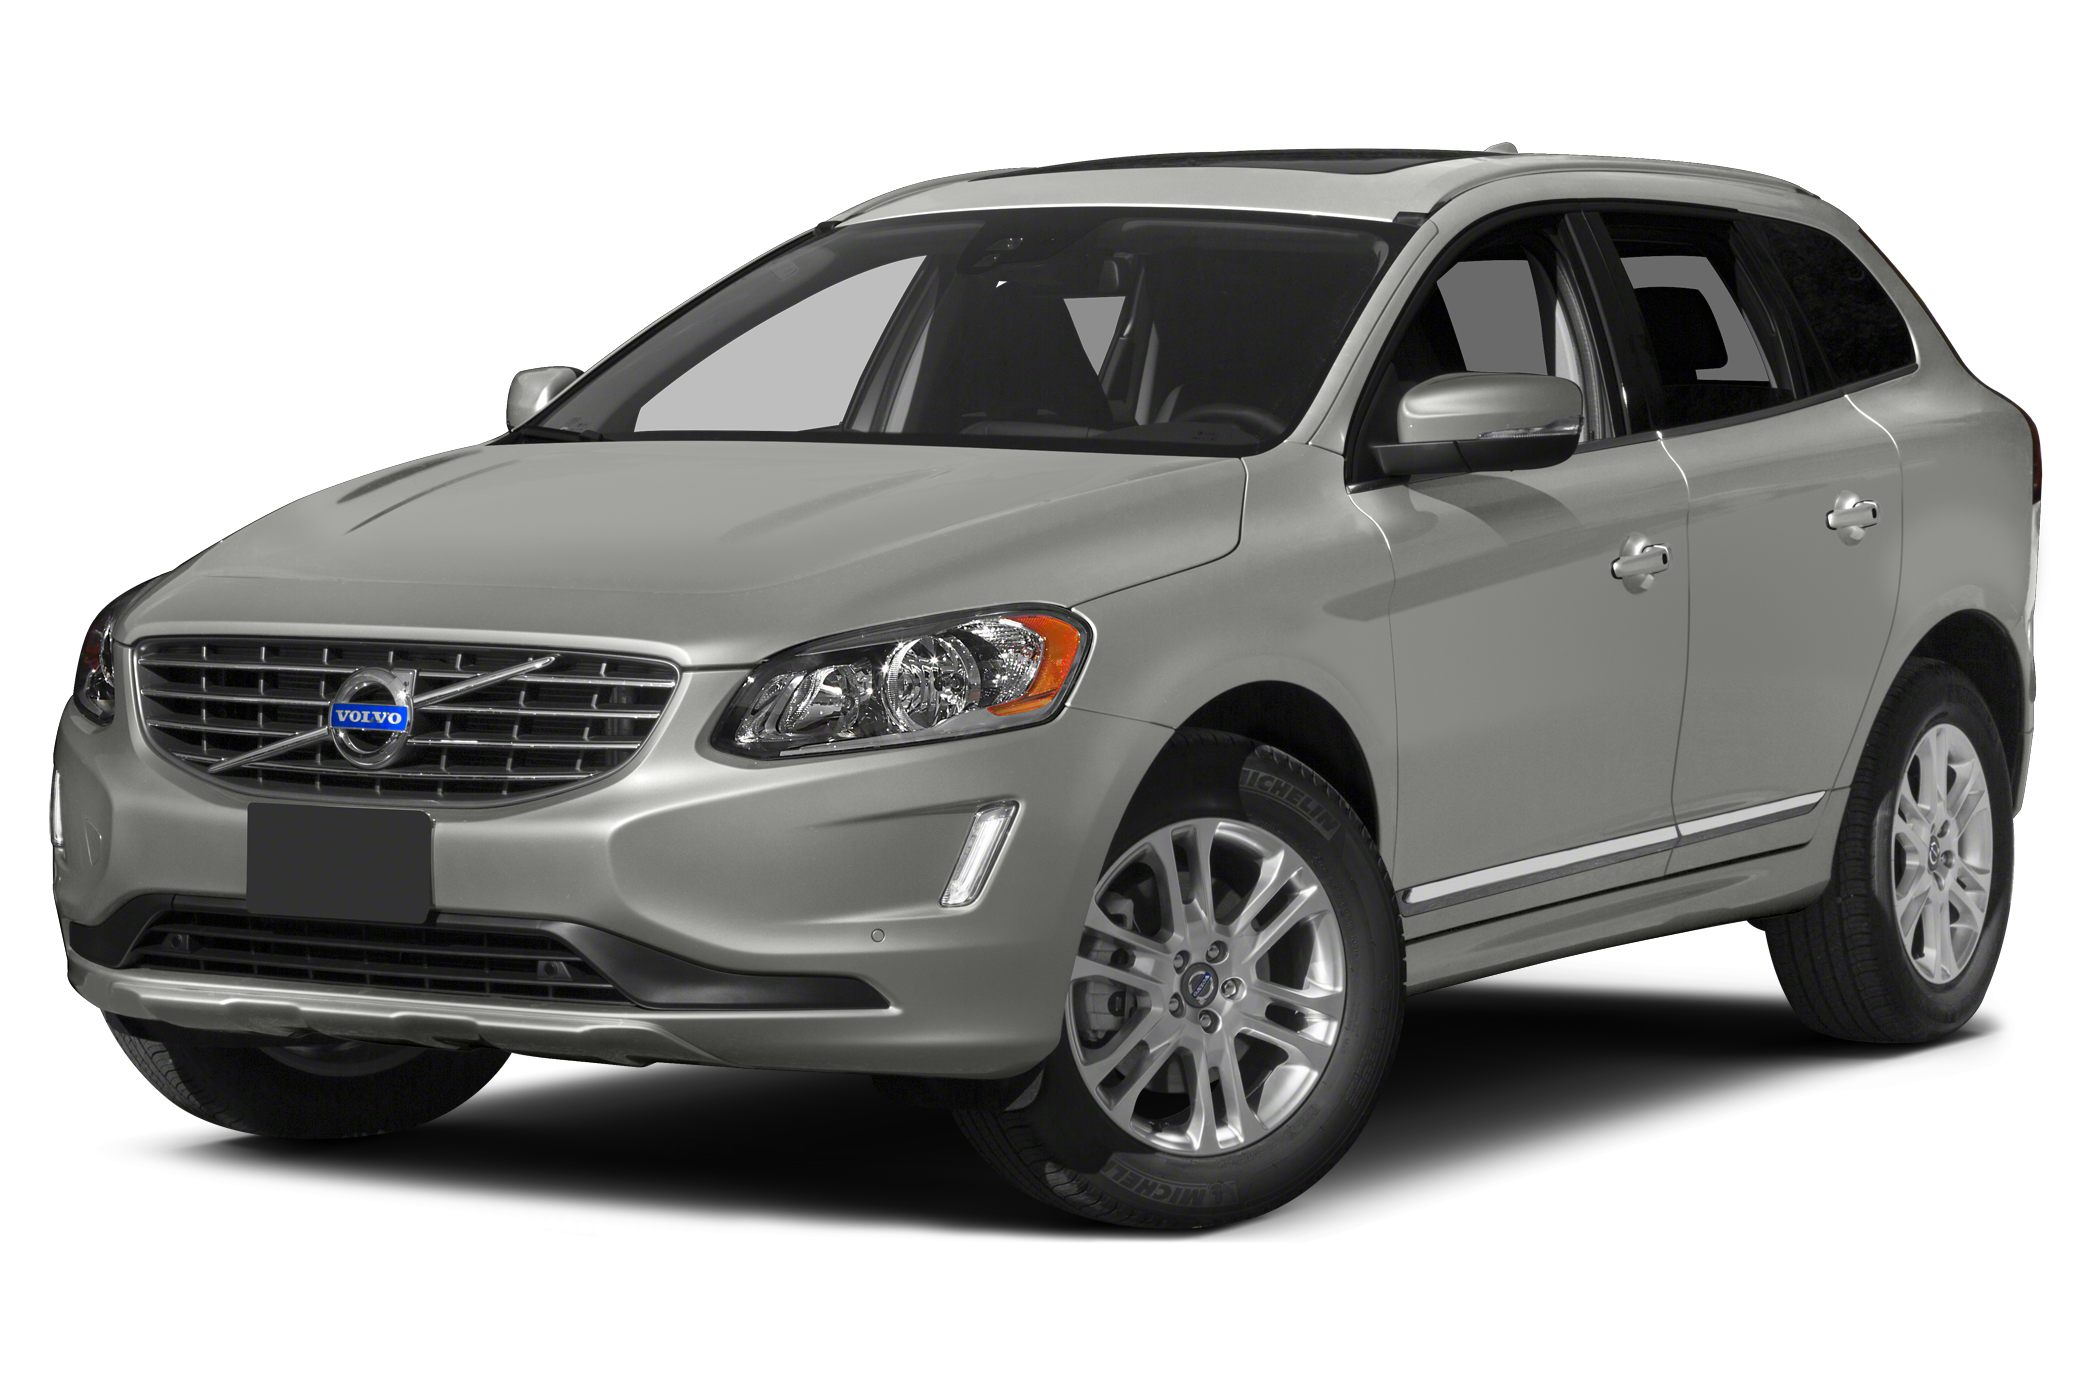 2015 Volvo XC60 T5 Premier SUV for sale in Bonita Springs for $42,730 with 0 miles.